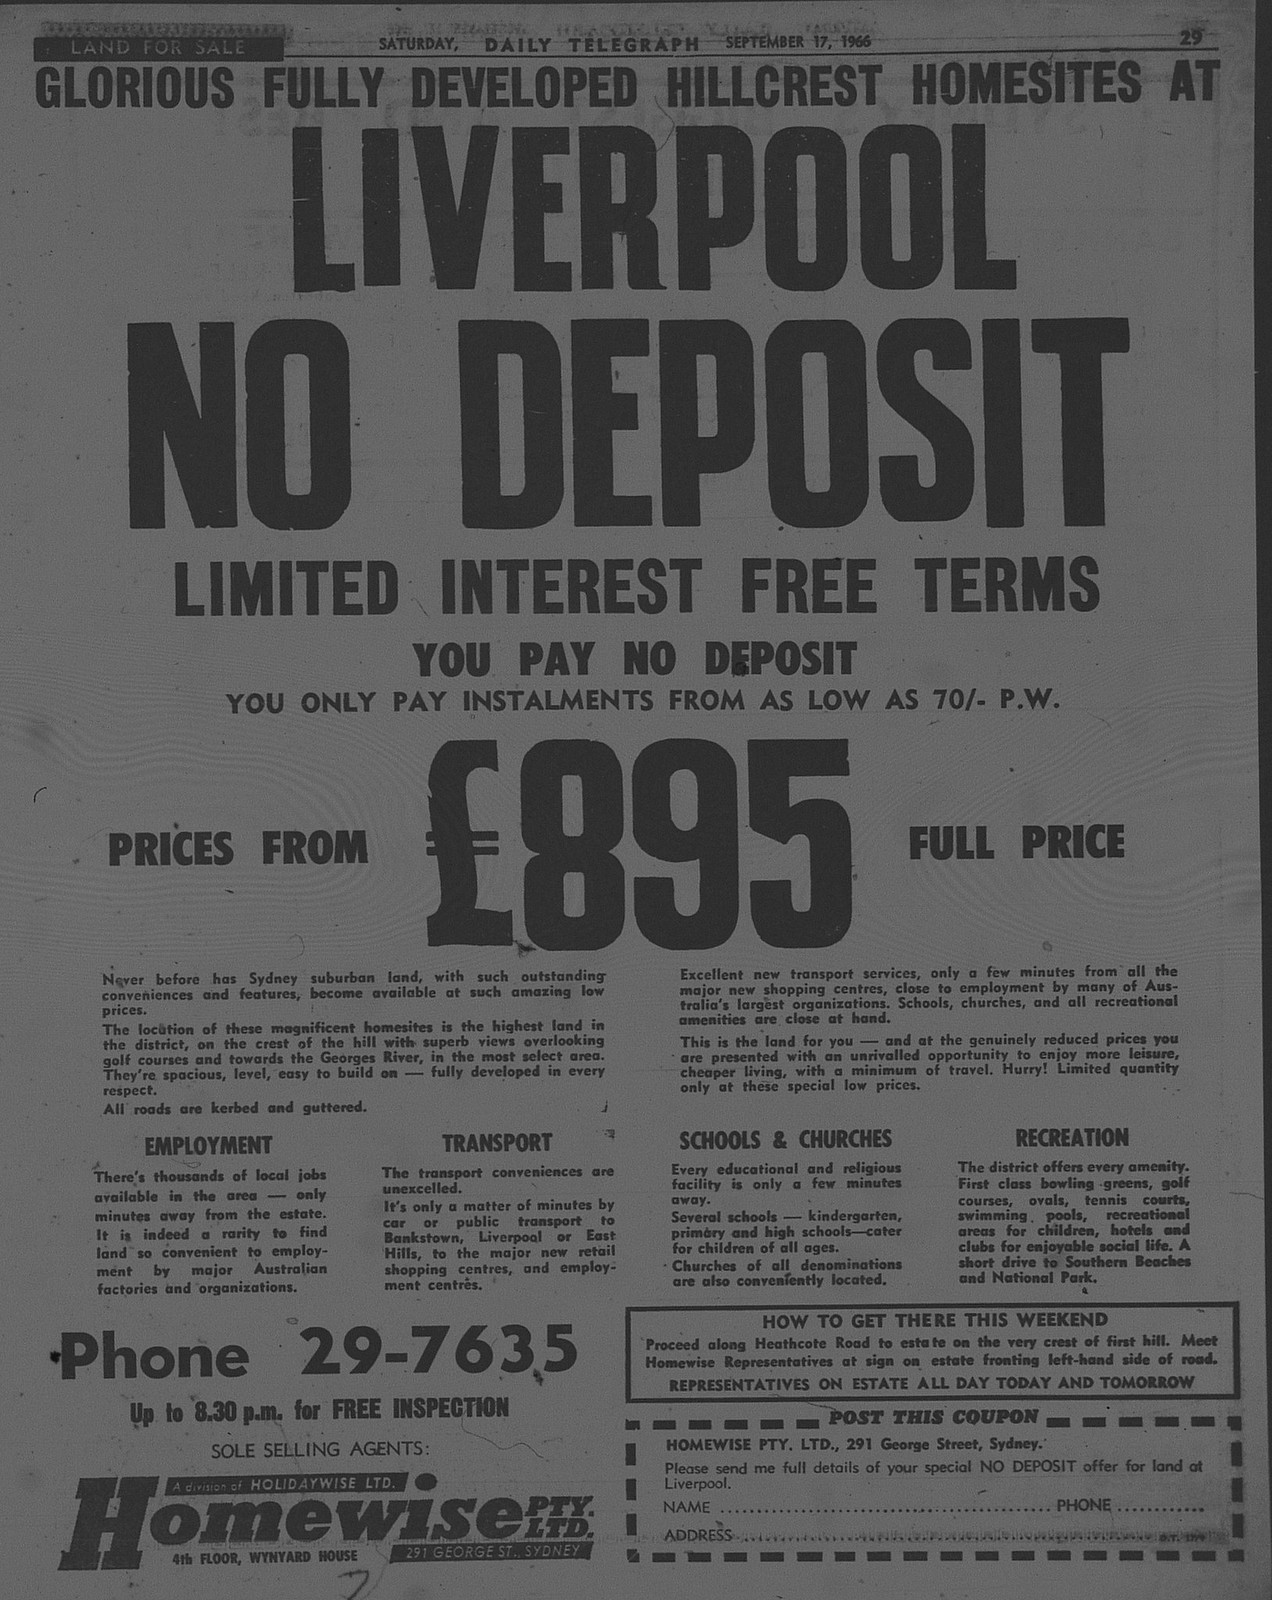 Liverpool housing ad September 17 1966 daily telegraph